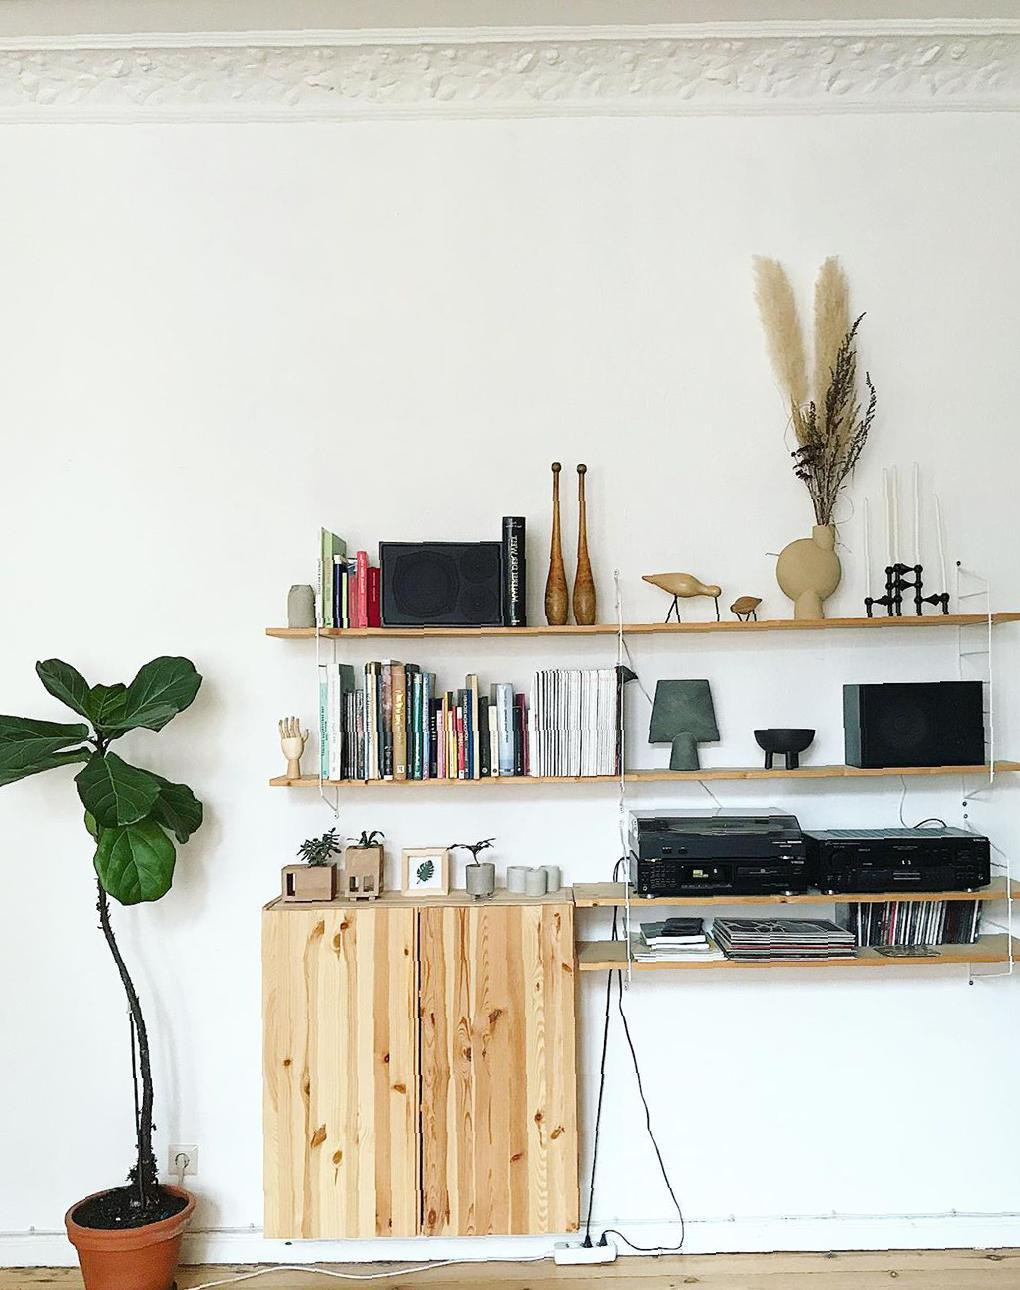 35 Ingenious Ideas To Decorate Your Home With Adding A Greenery - Page 10 of 12 - Guide19 Blog